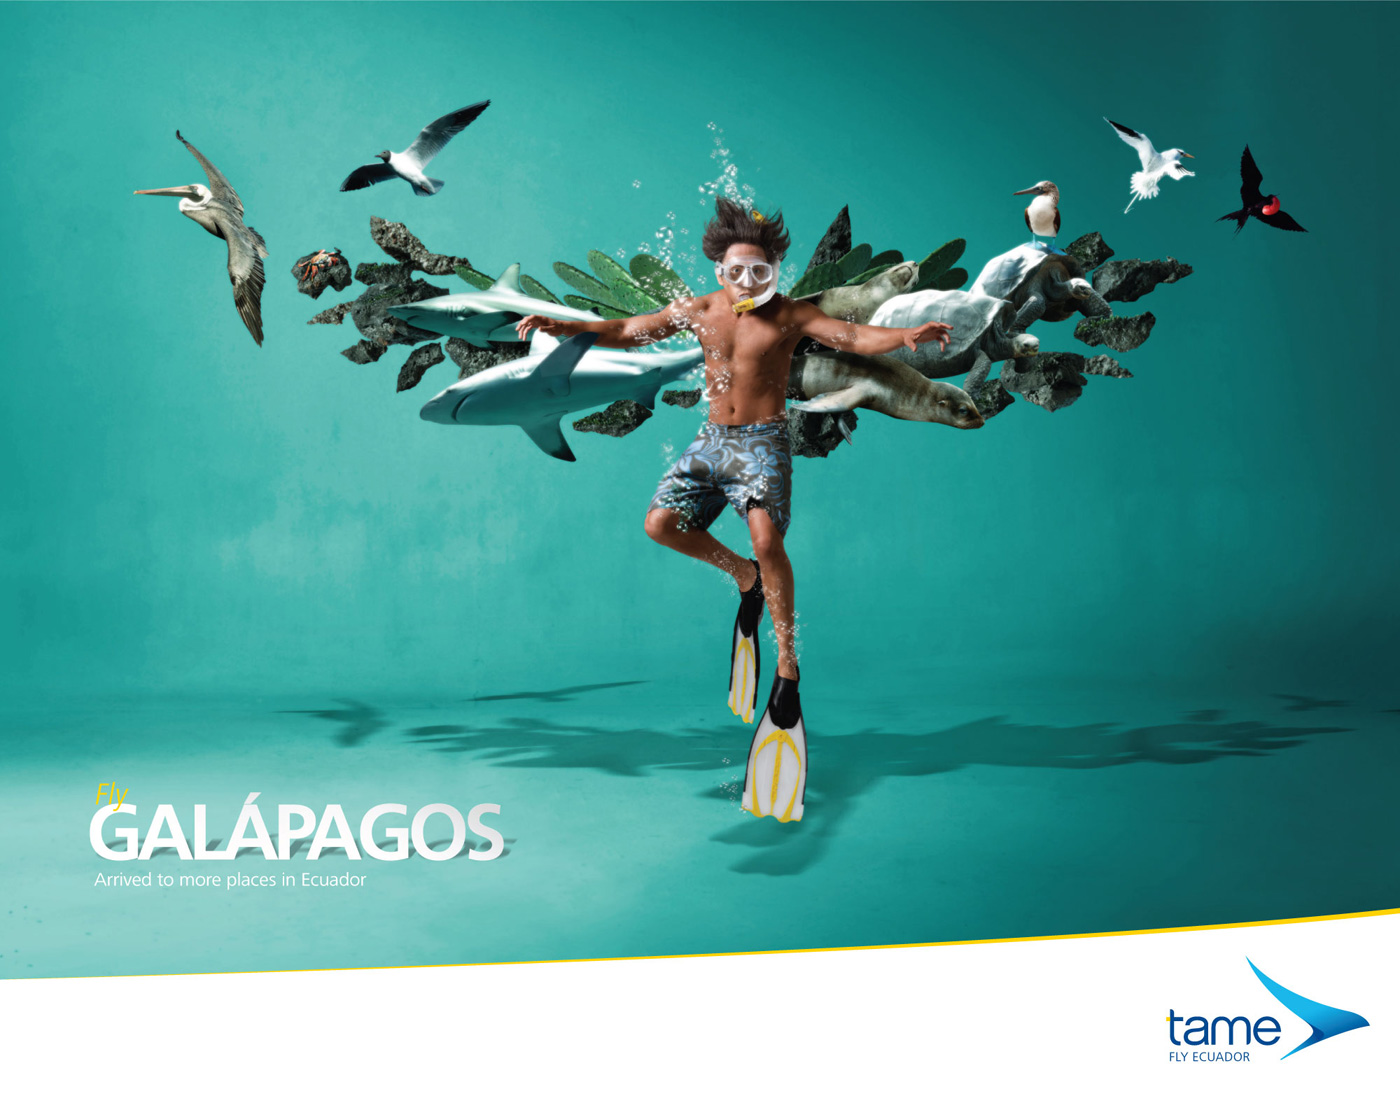 Fly GALÁPAGOS Arrived to more places in Ecuador